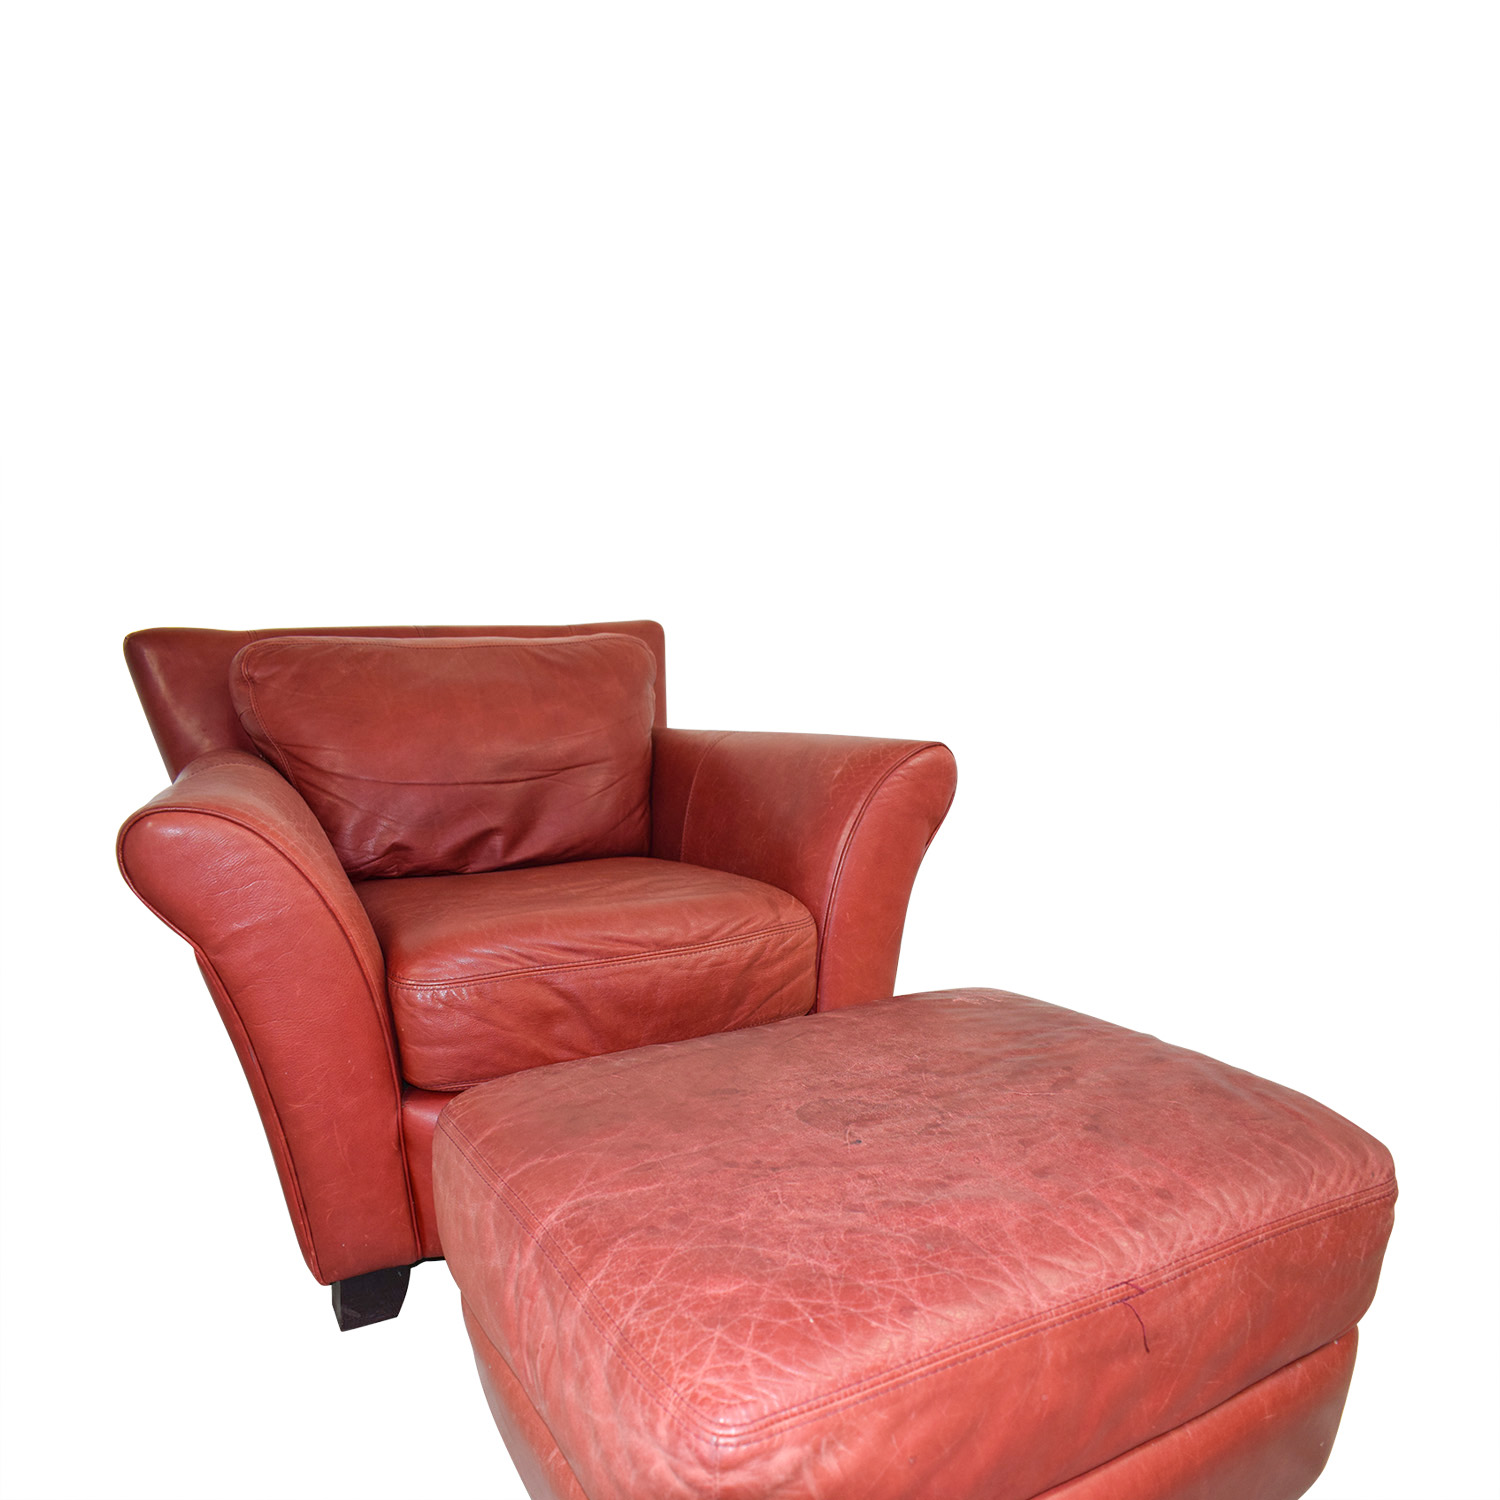 ... Palliser Palliser Red Leather Chair And Ottoman Price ...